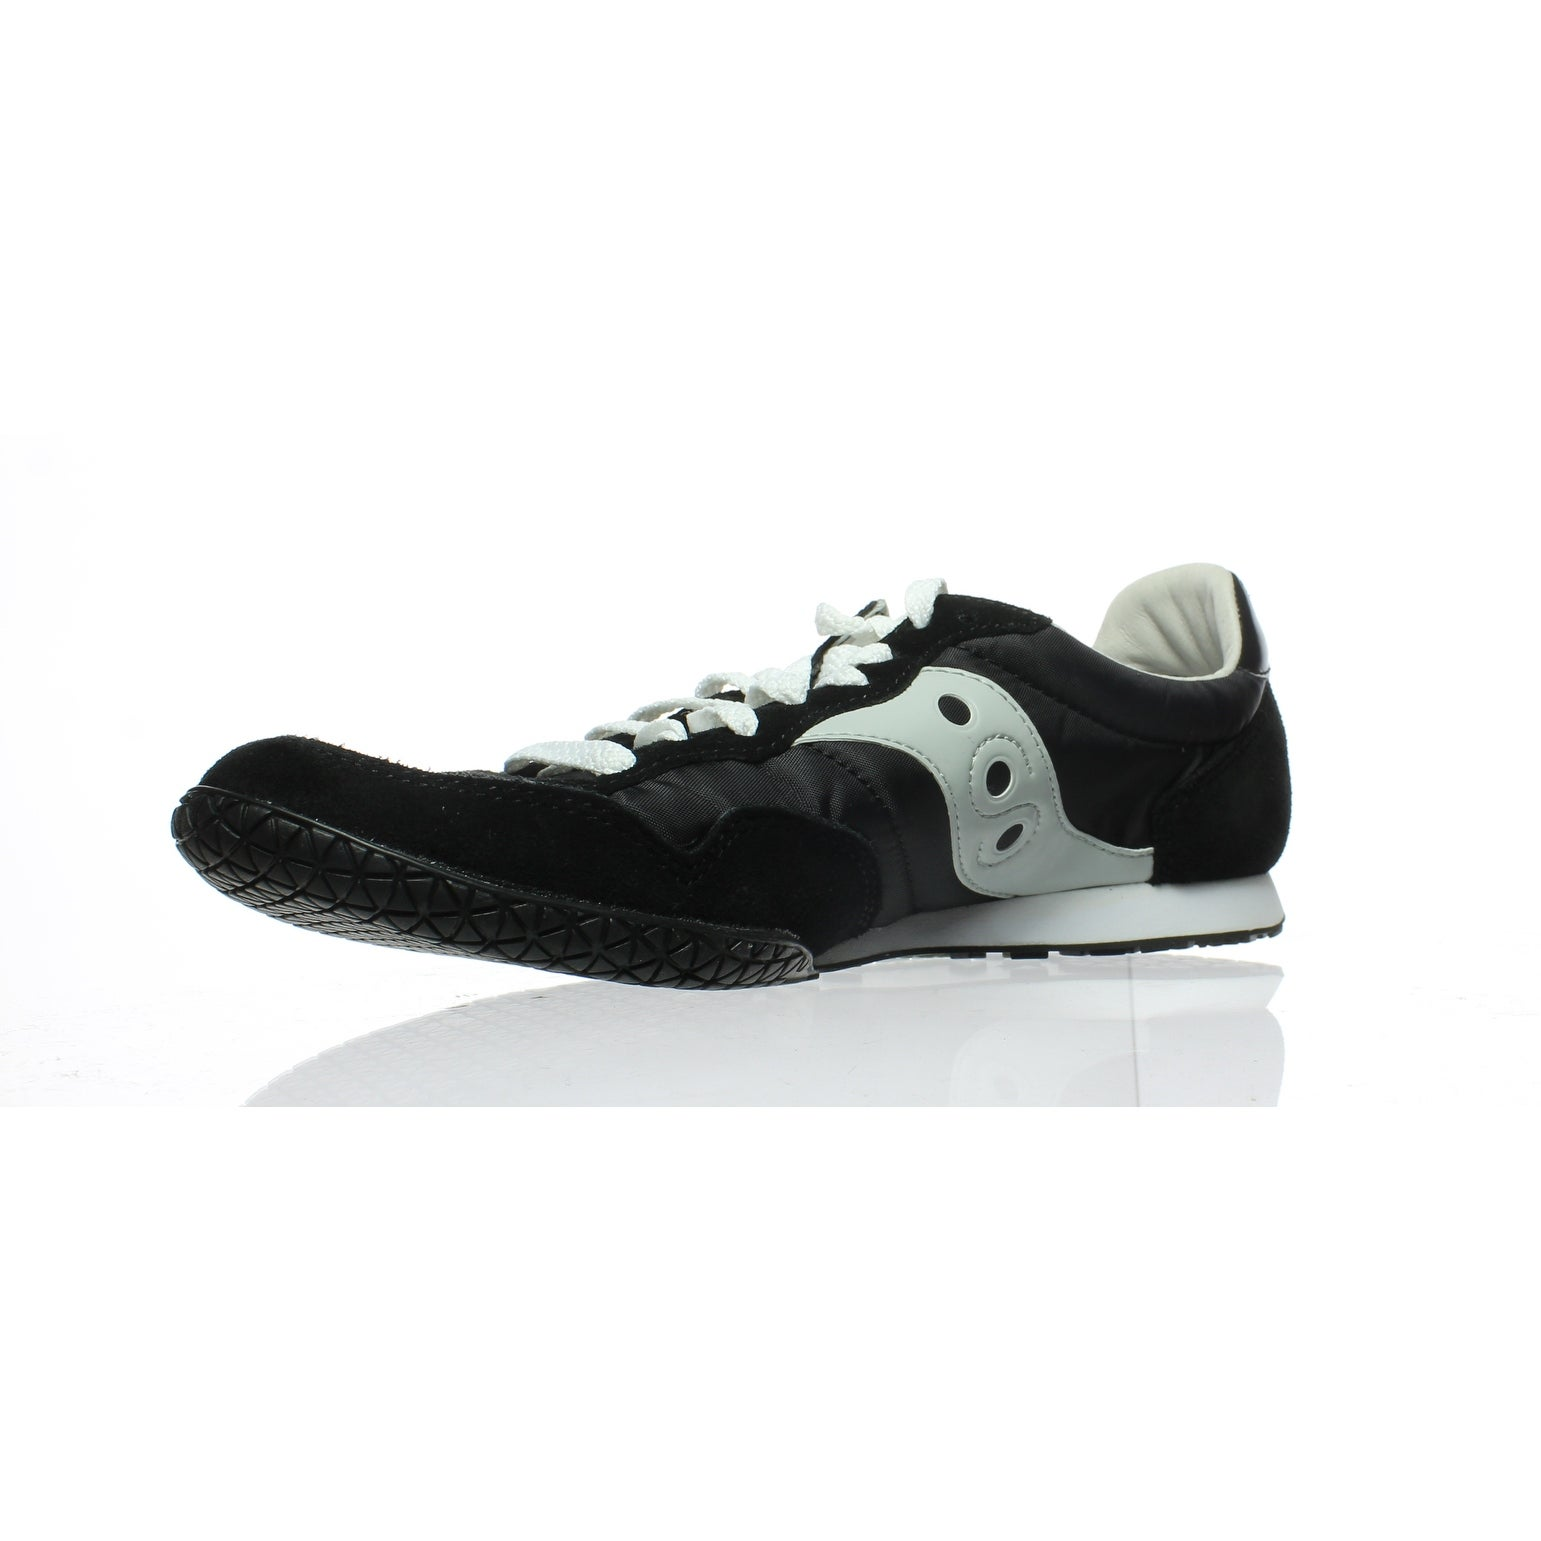 7f29a0400f39 Shop Saucony Mens Bullet-M Black Grey Fashion Sneaker Size 9.5 - Free  Shipping Today - Overstock - 25322556